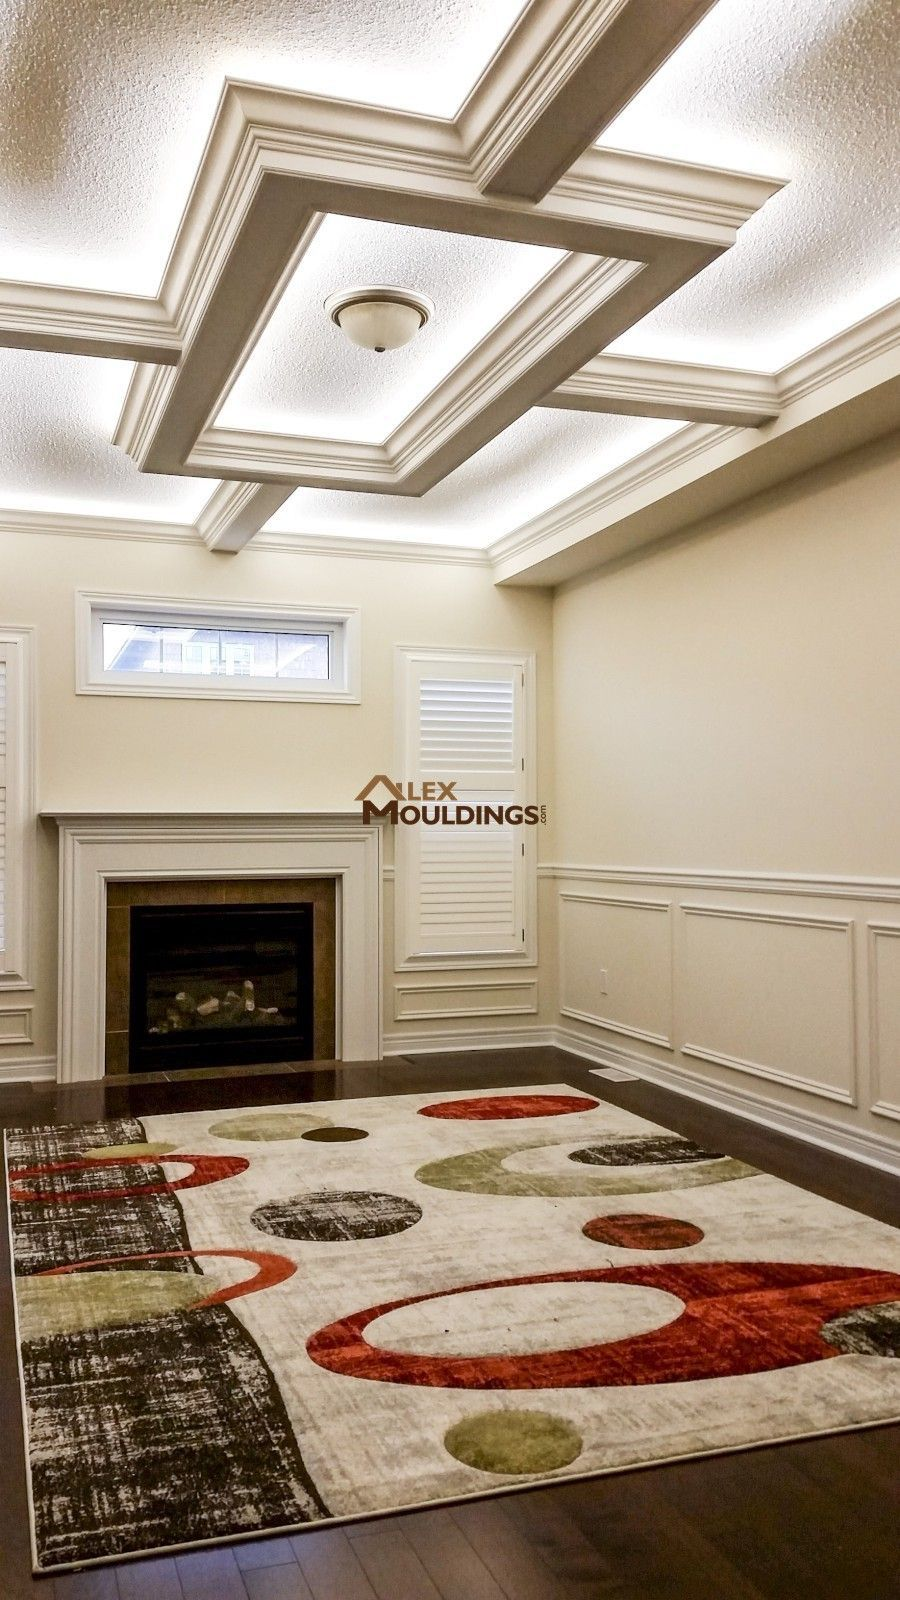 Best Jaw Dropping Diy Ideas False Ceiling Stairs Living Rooms 400 x 300